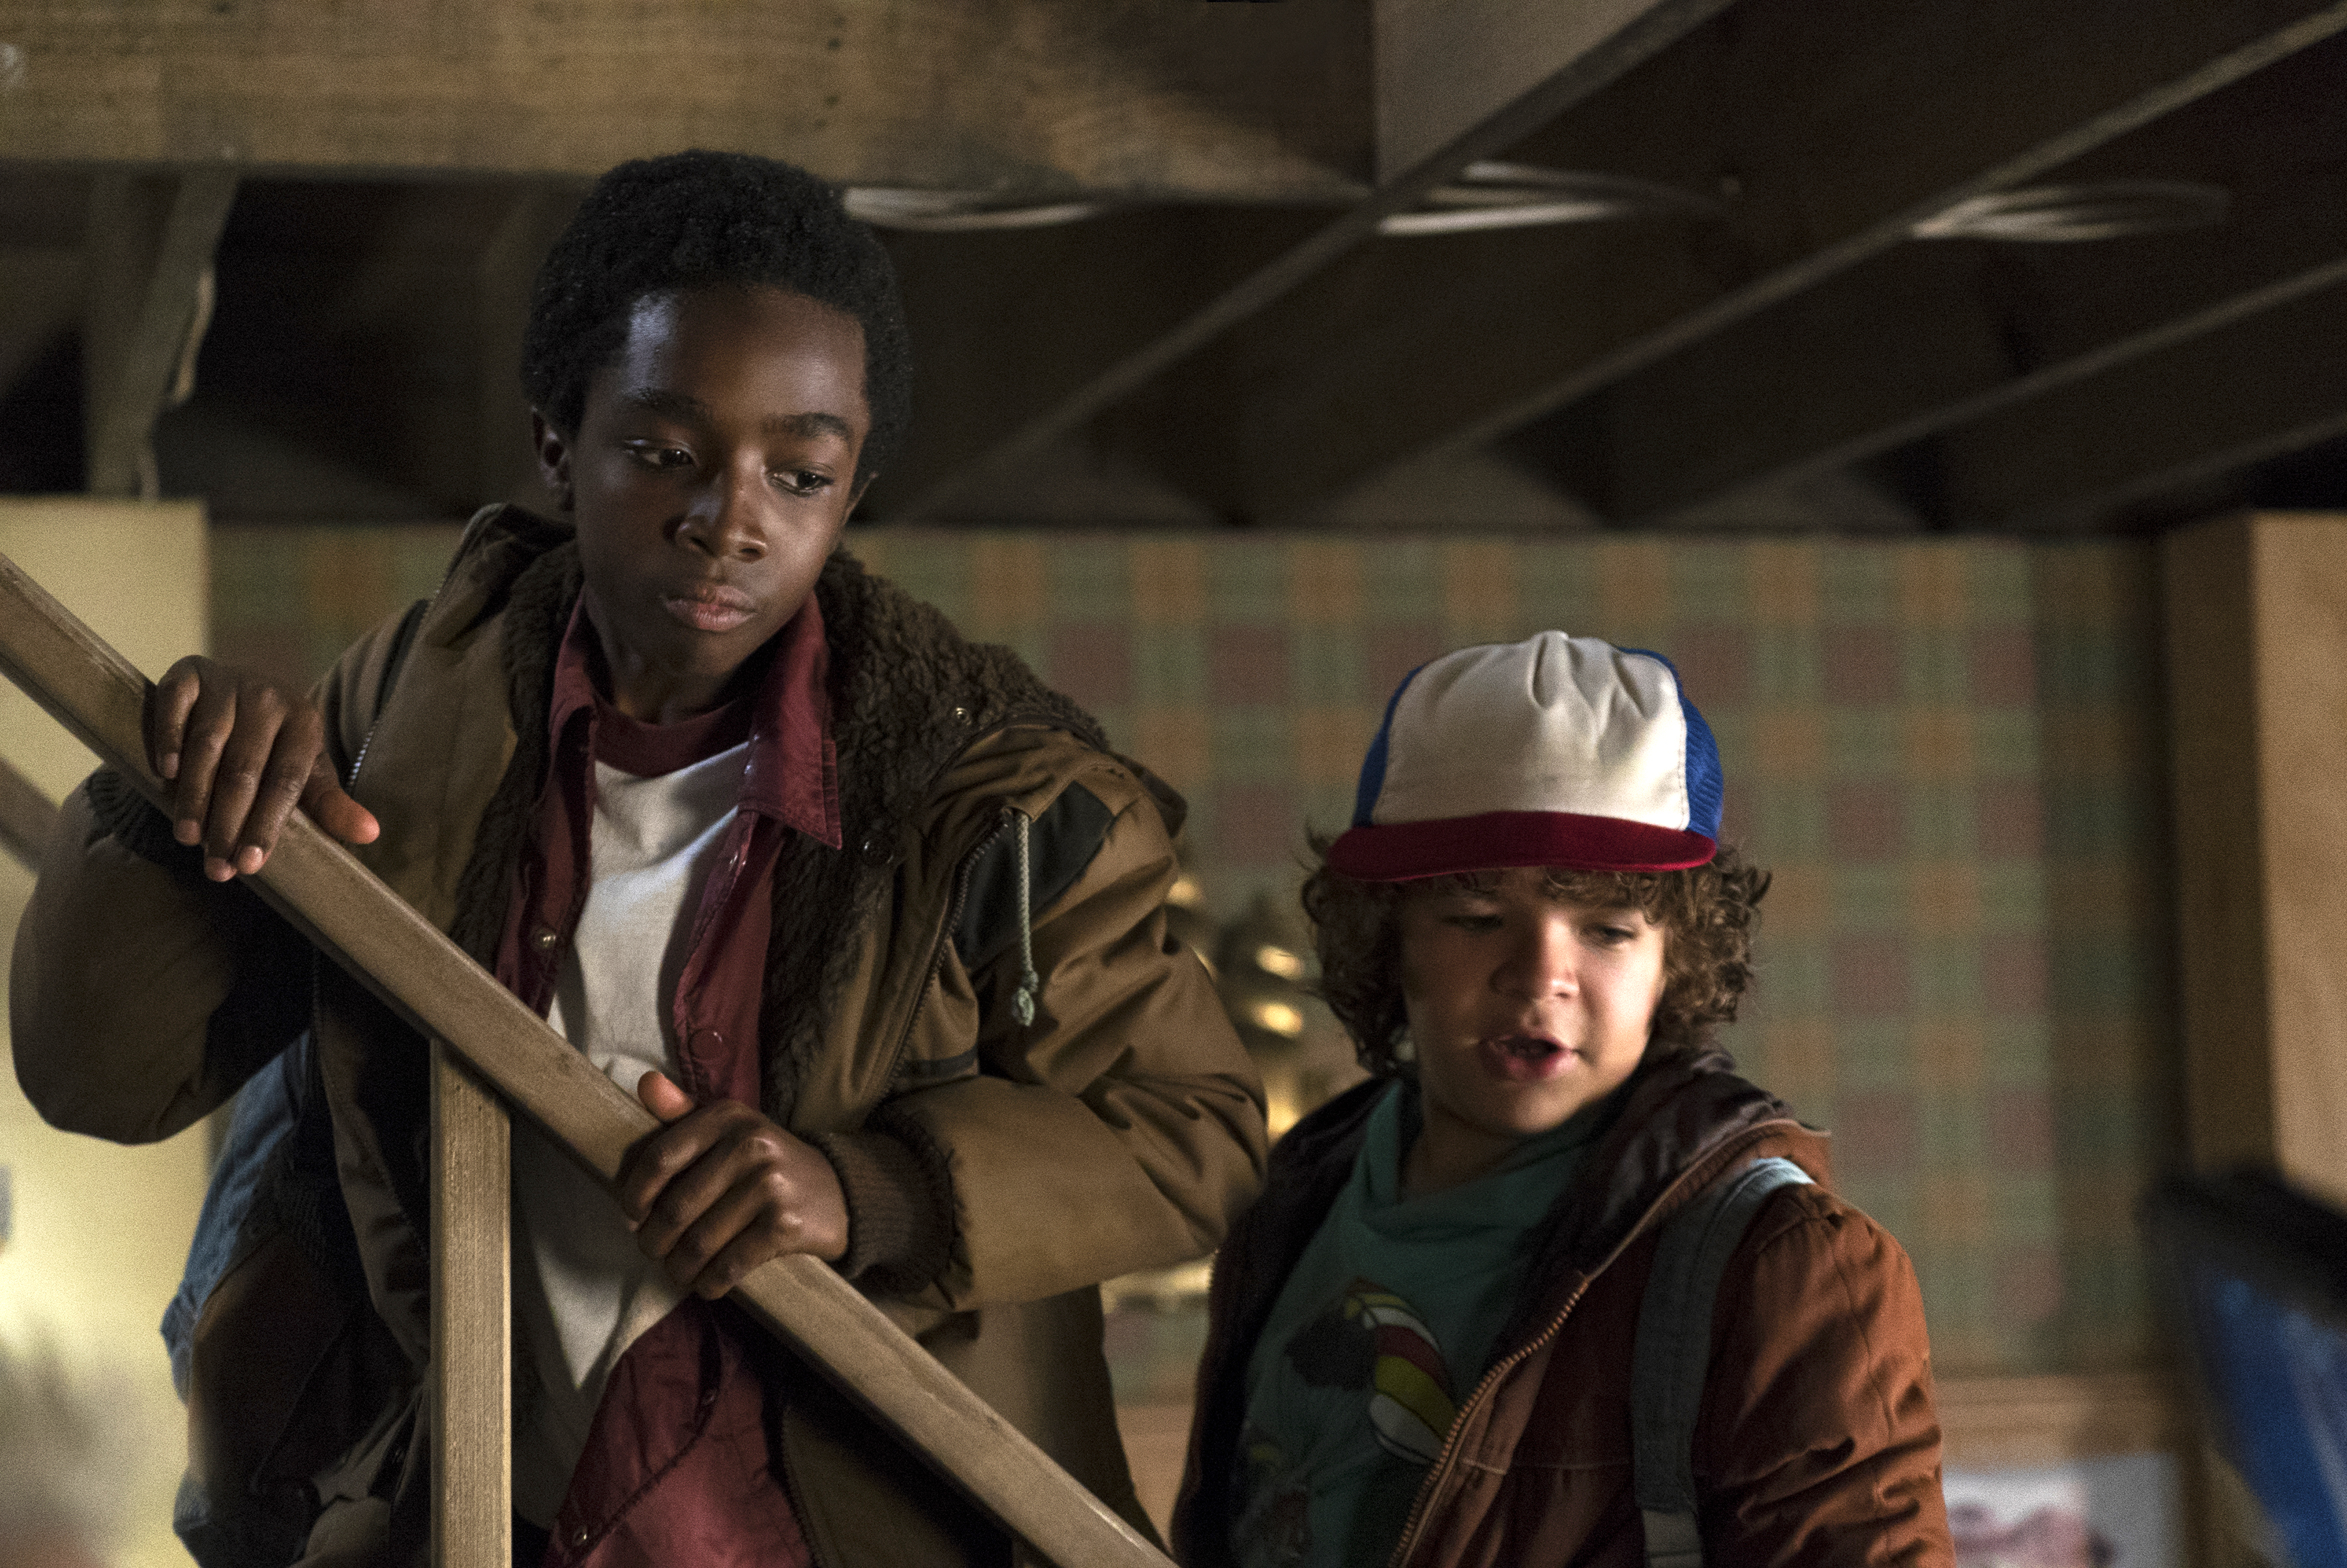 """The Duffer brothers have a very interesting Pixar movie they want to emulate in """"Stranger Things"""" Season 2"""